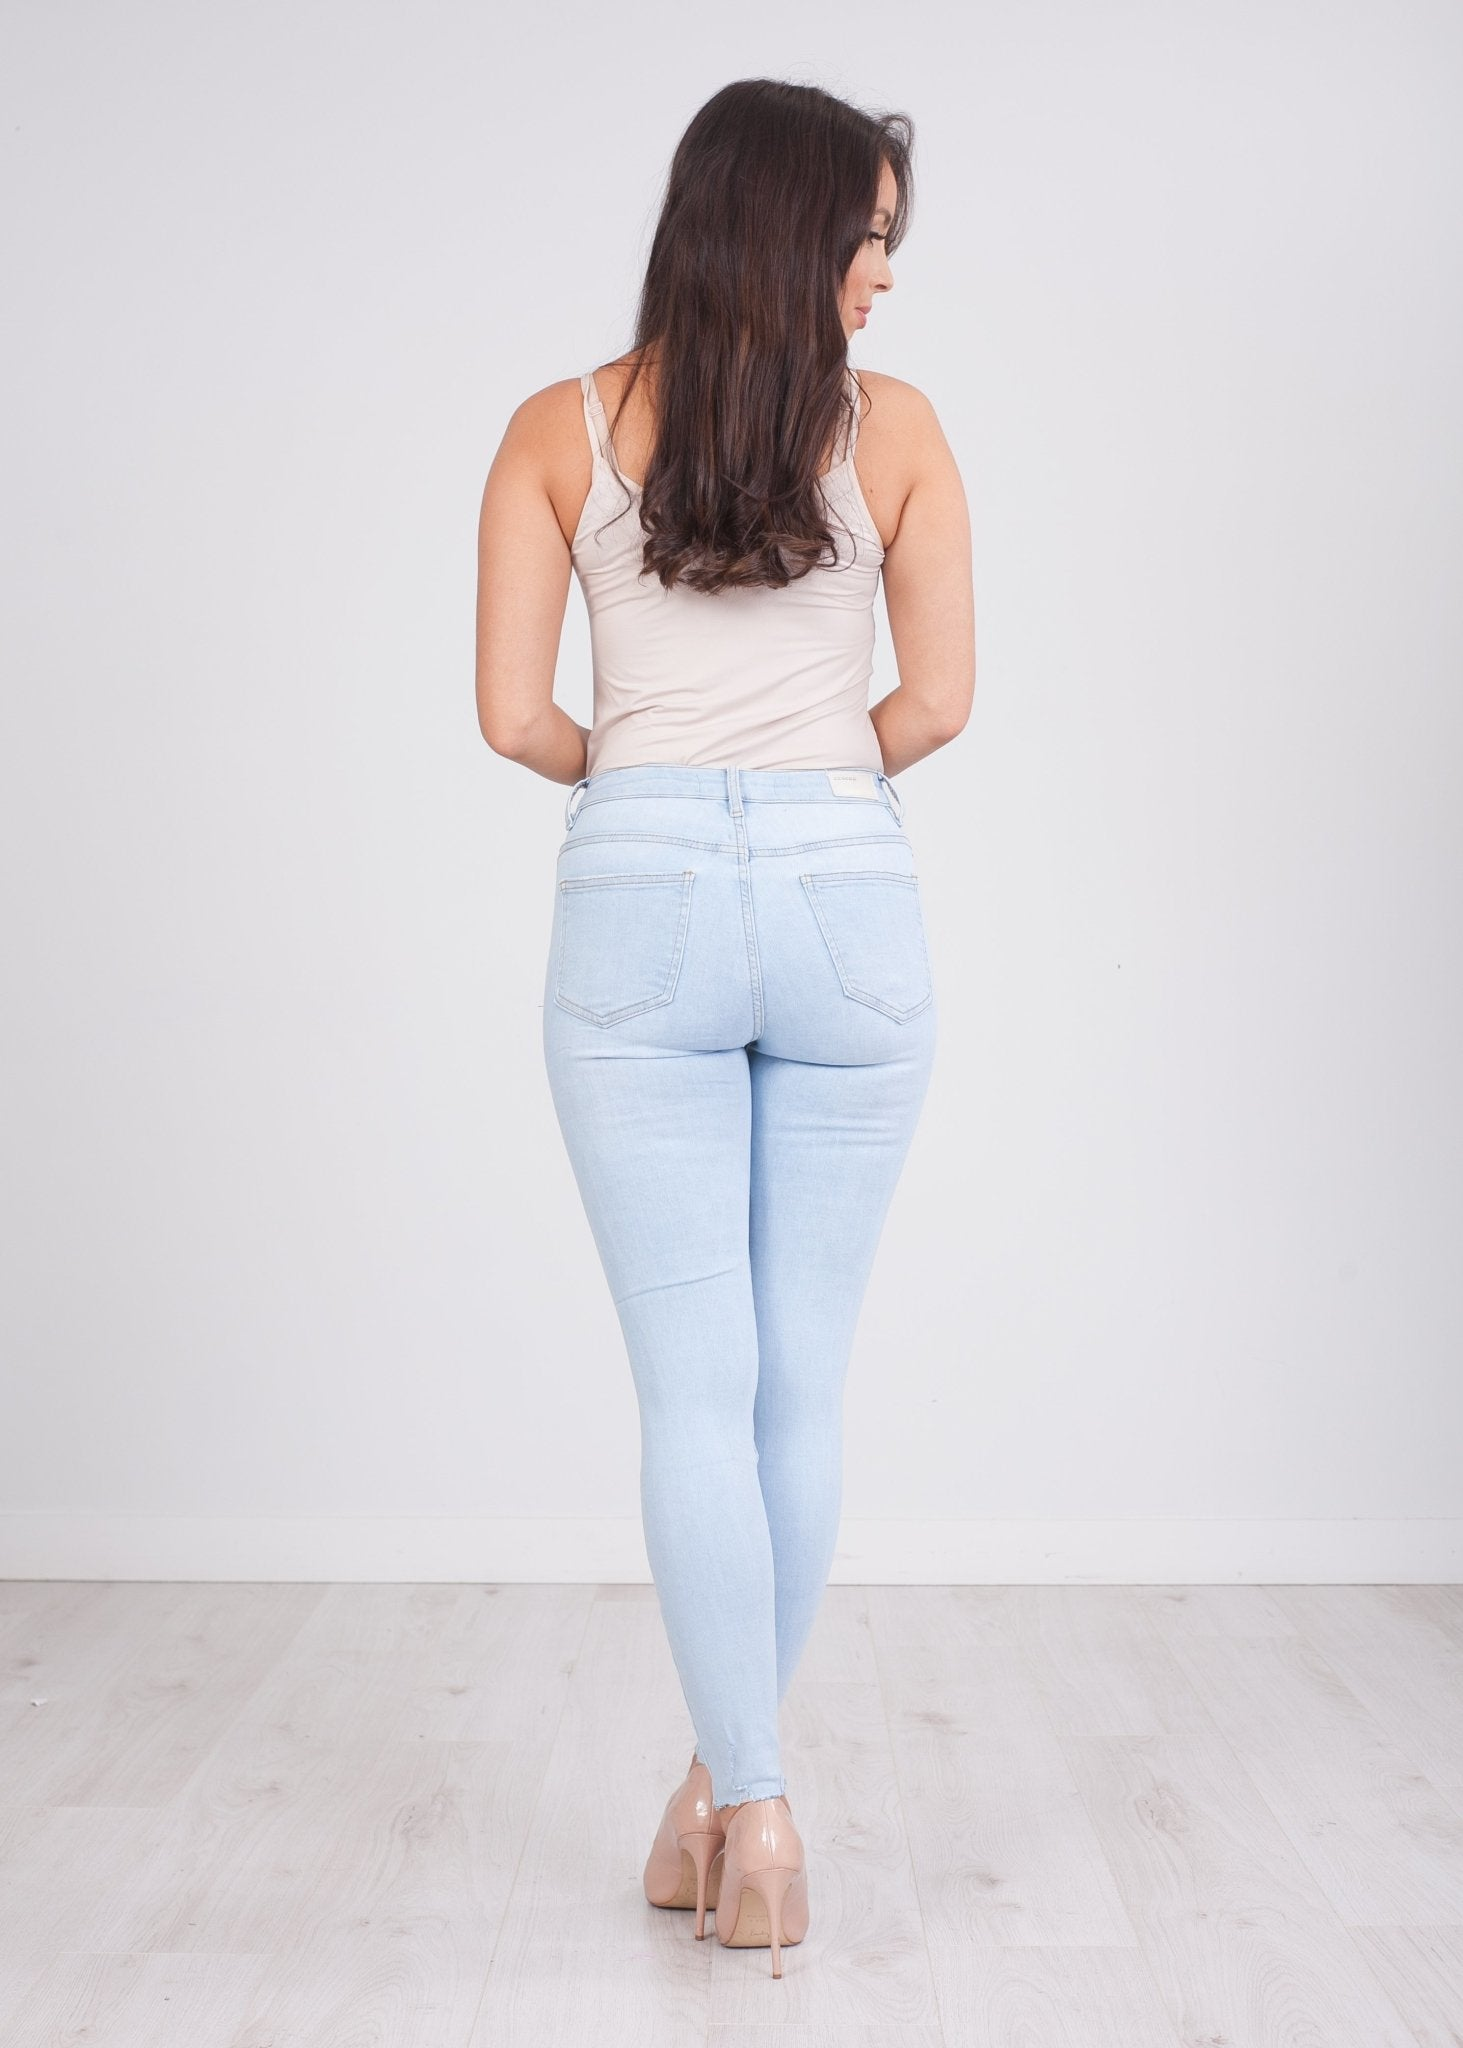 'Maisie' Light Wash Distressed Jeans - The Walk in Wardrobe